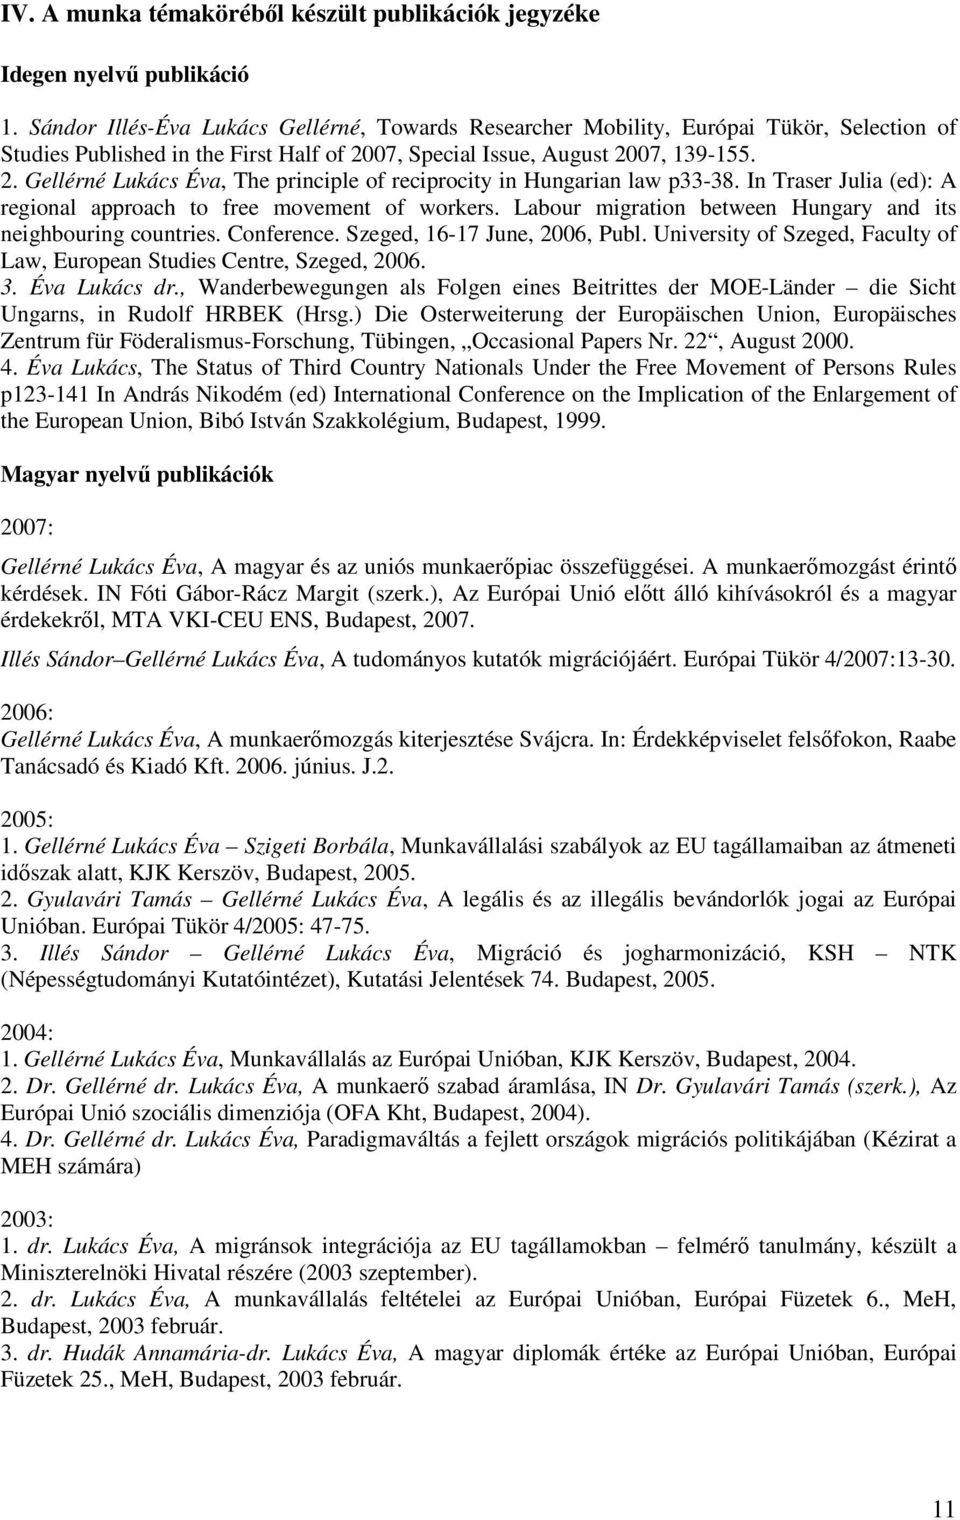 07, Special Issue, August 2007, 139-155. 2. Gellérné Lukács Éva, The principle of reciprocity in Hungarian law p33-38. In Traser Julia (ed): A regional approach to free movement of workers.